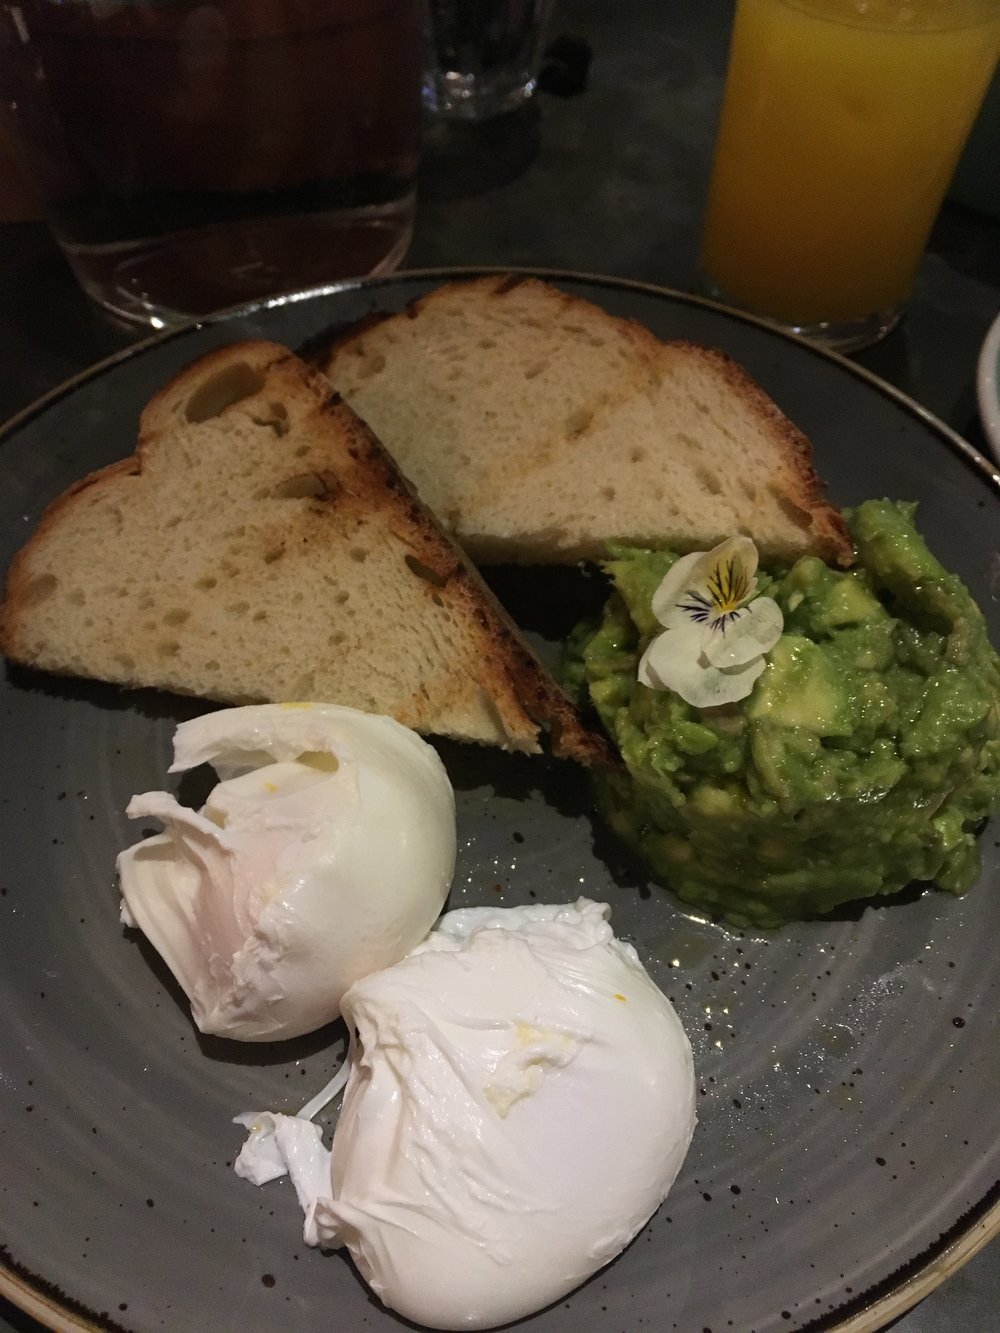 My mashed avocado & toast with a side of poached eggs